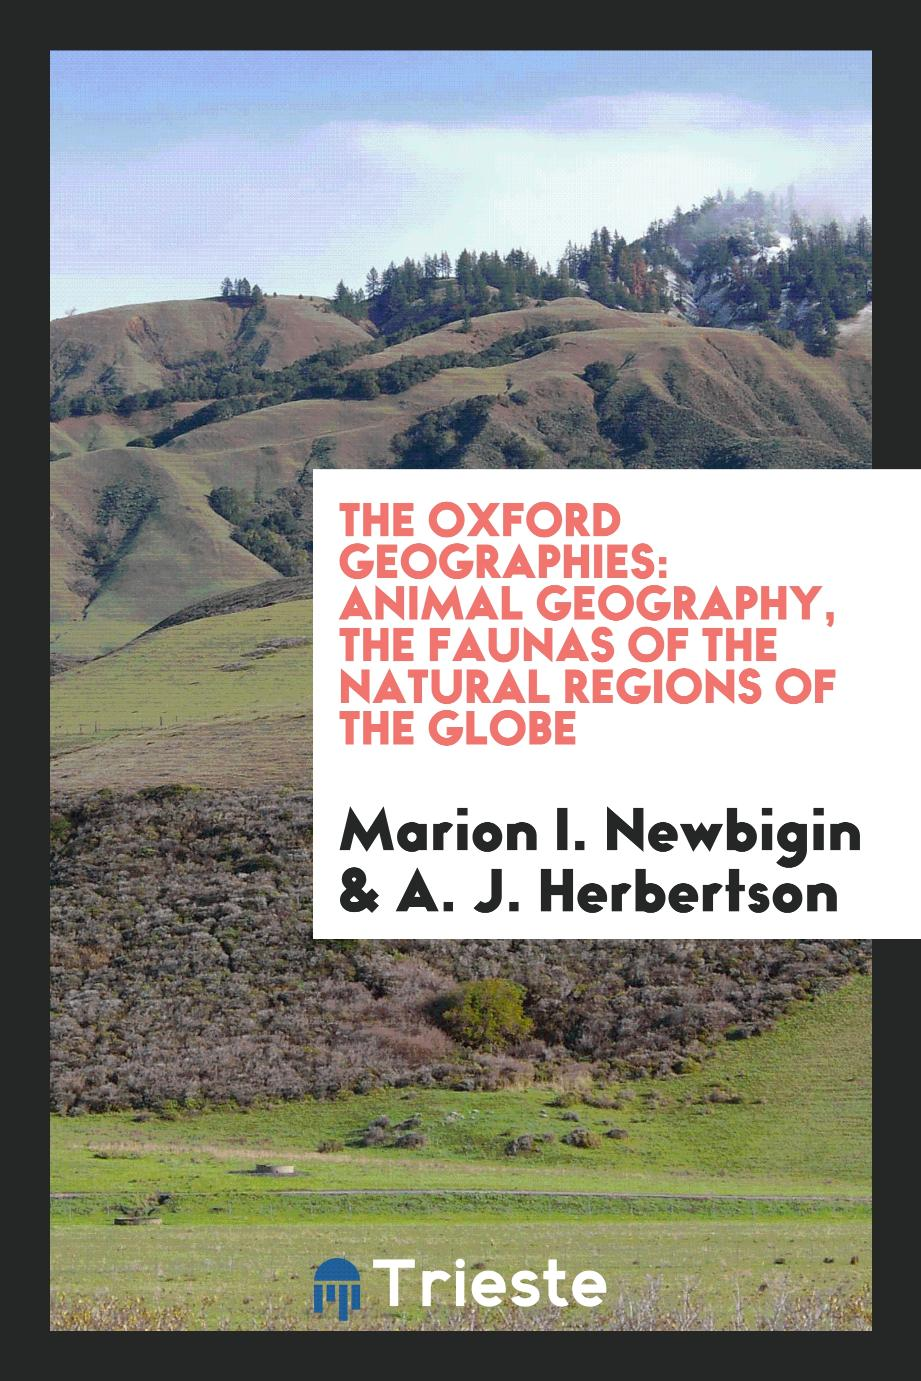 The oxford geographies: Animal geography, the faunas of the natural regions of the Globe